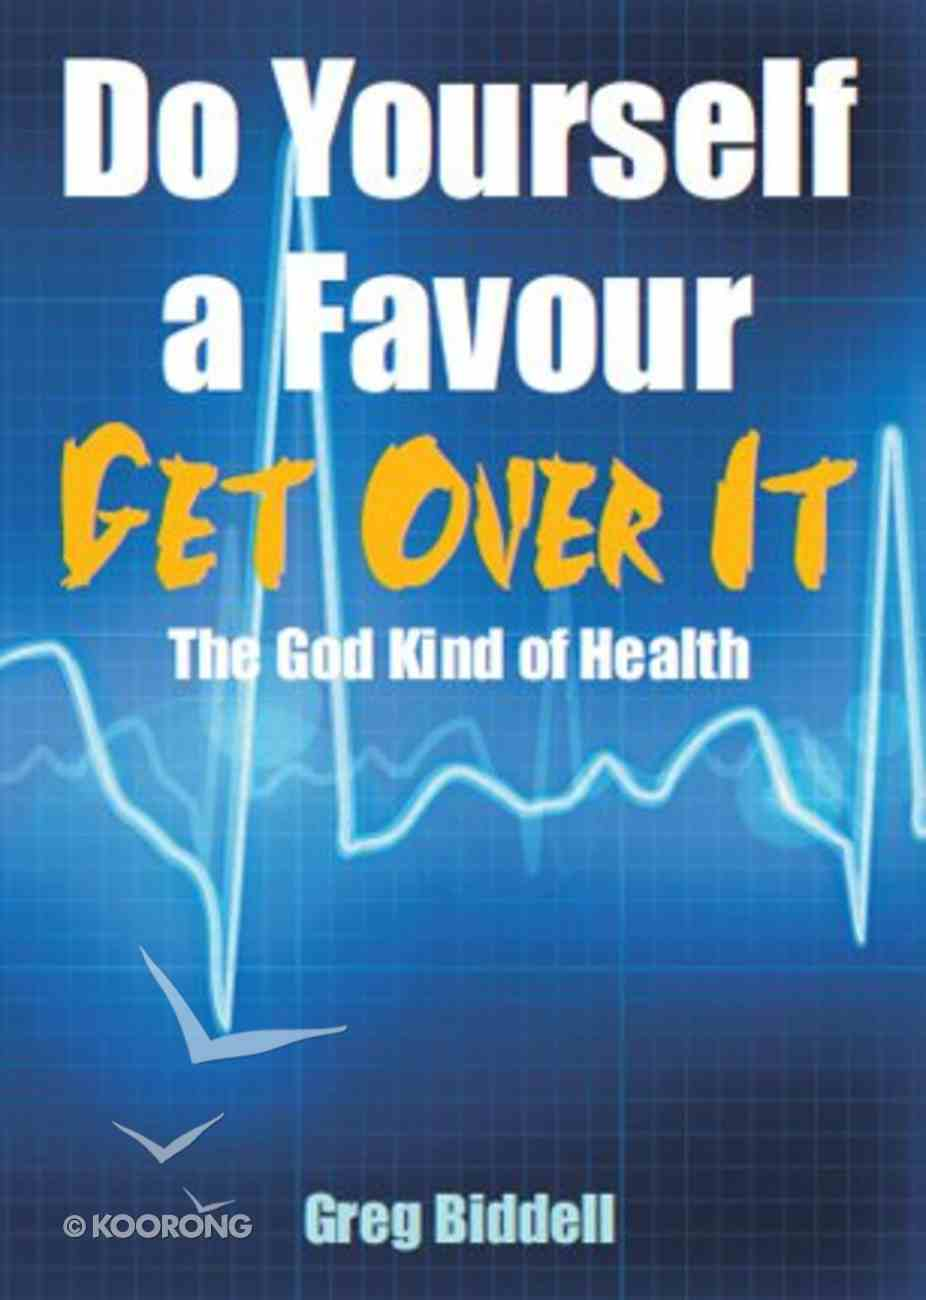 Do Yourself a Favour Get Over It Paperback